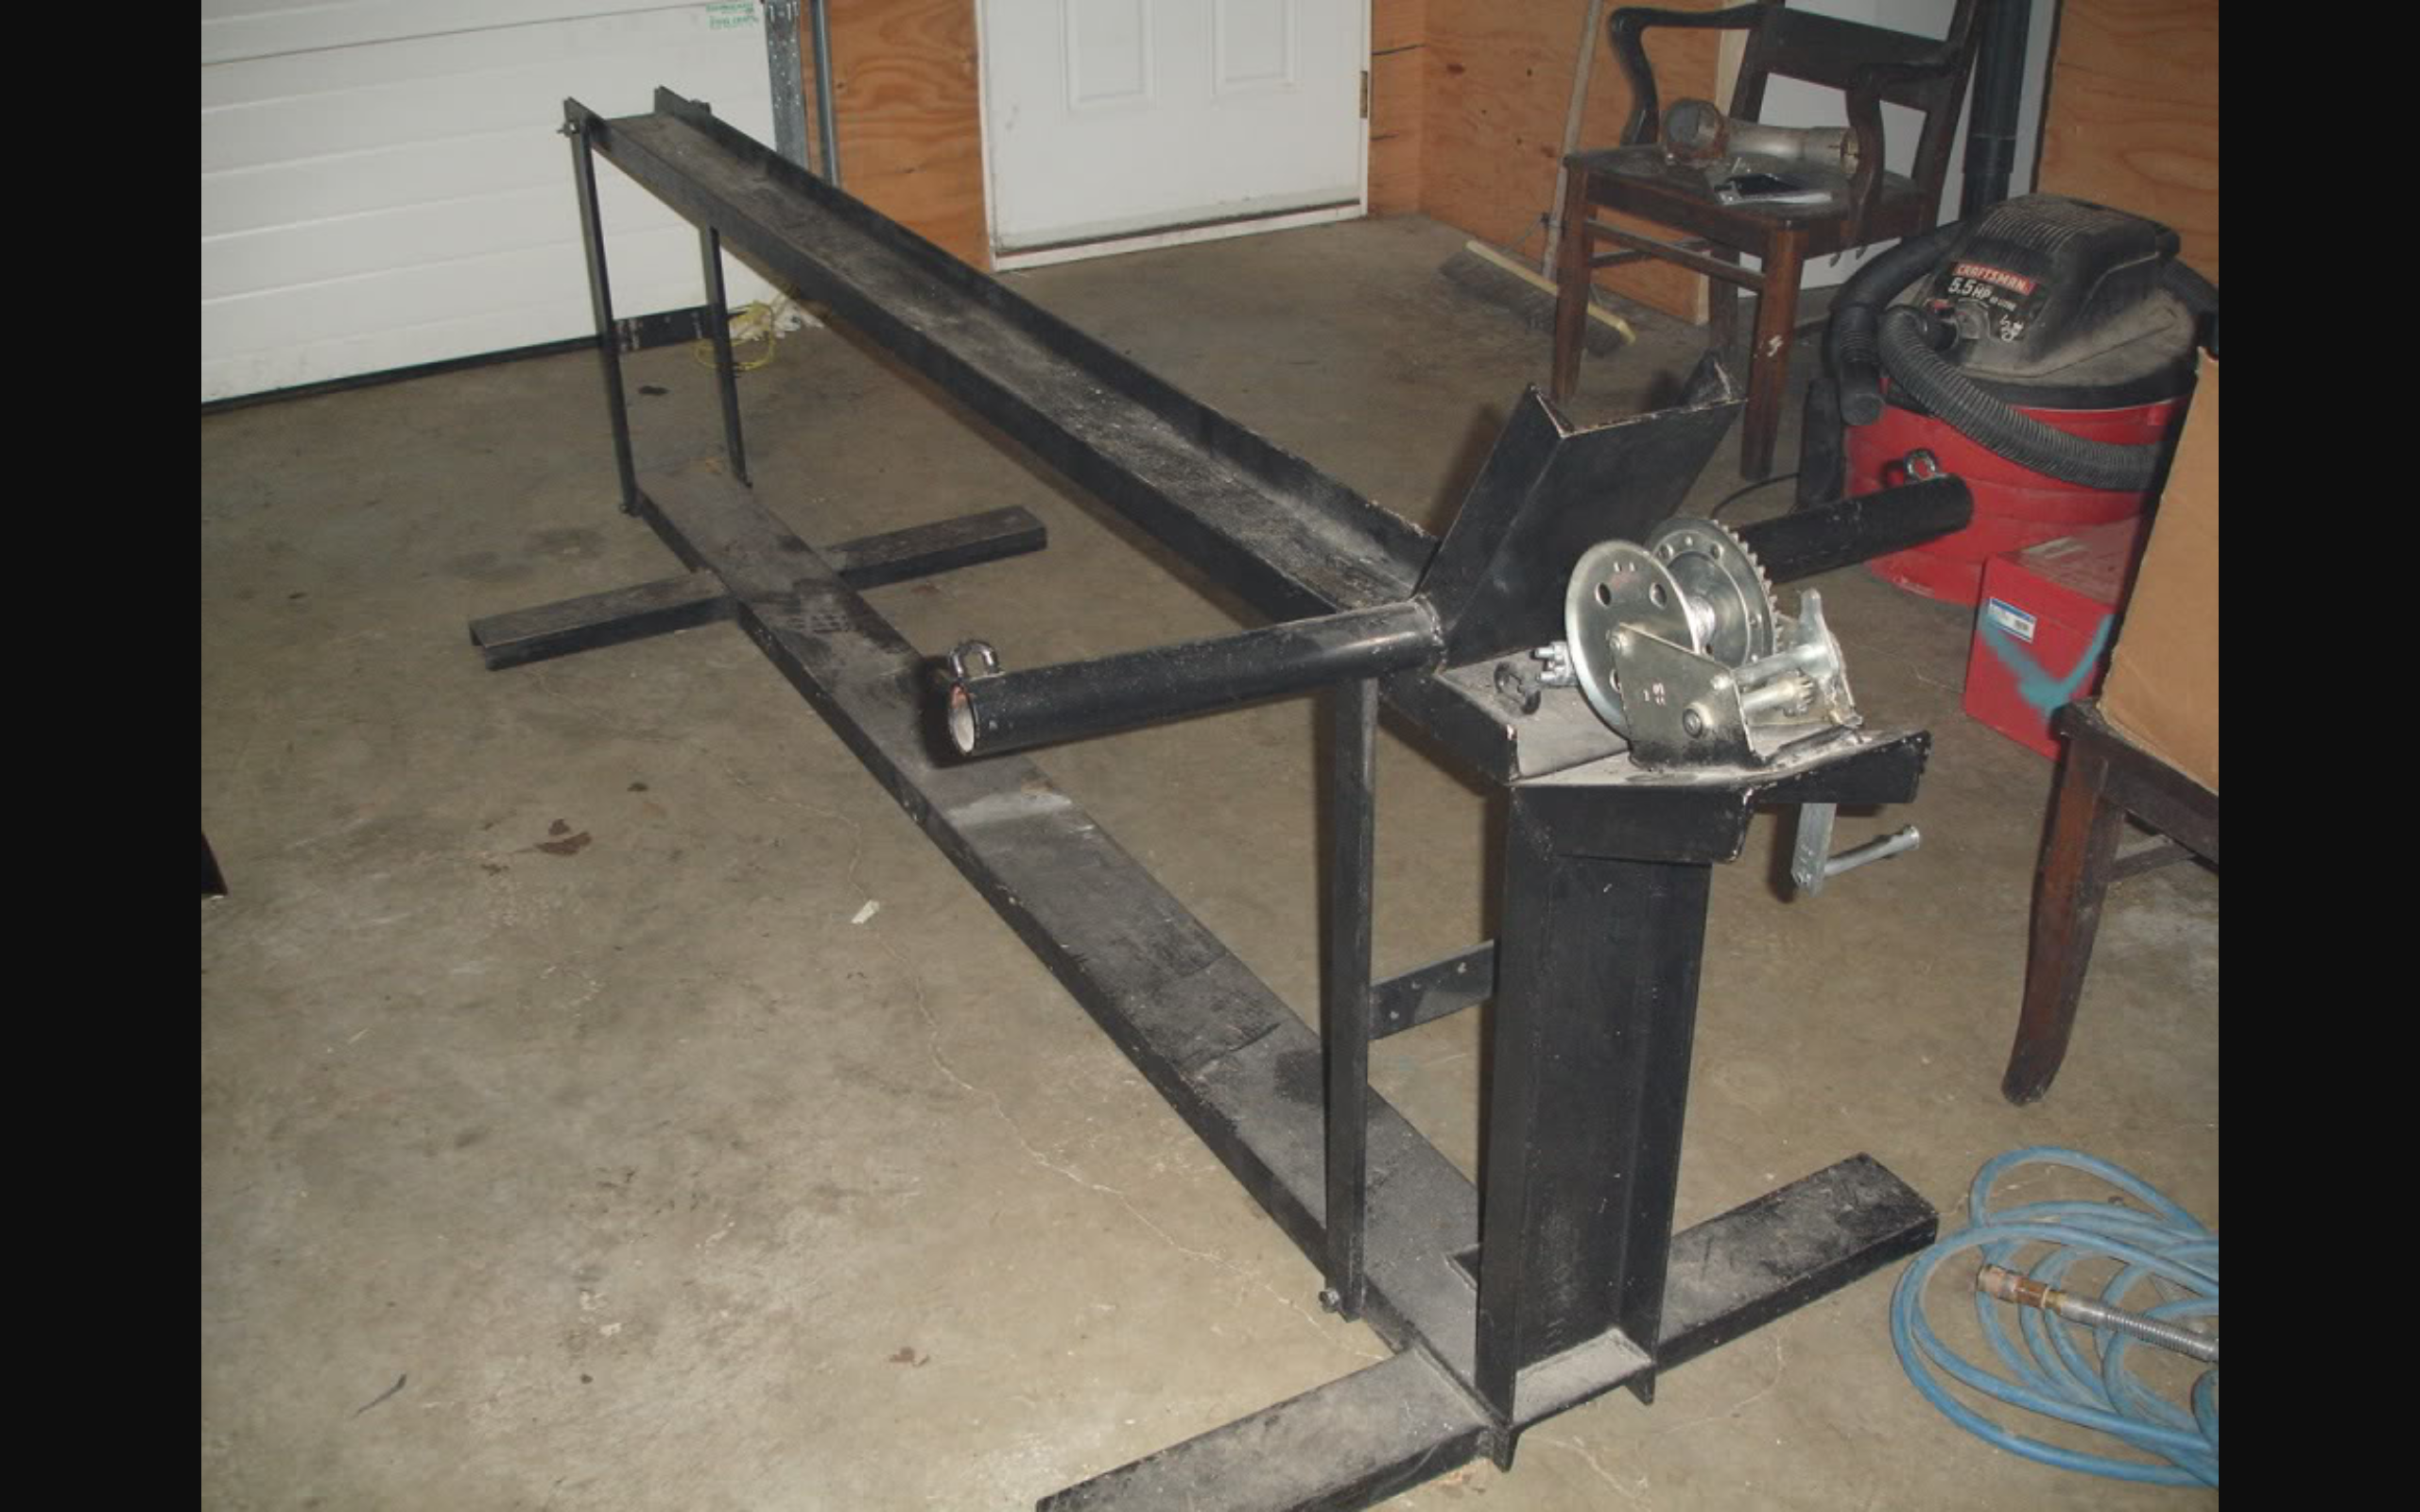 Motorcycle Hoist Brisbane: Making A Motorcycle Lift Table